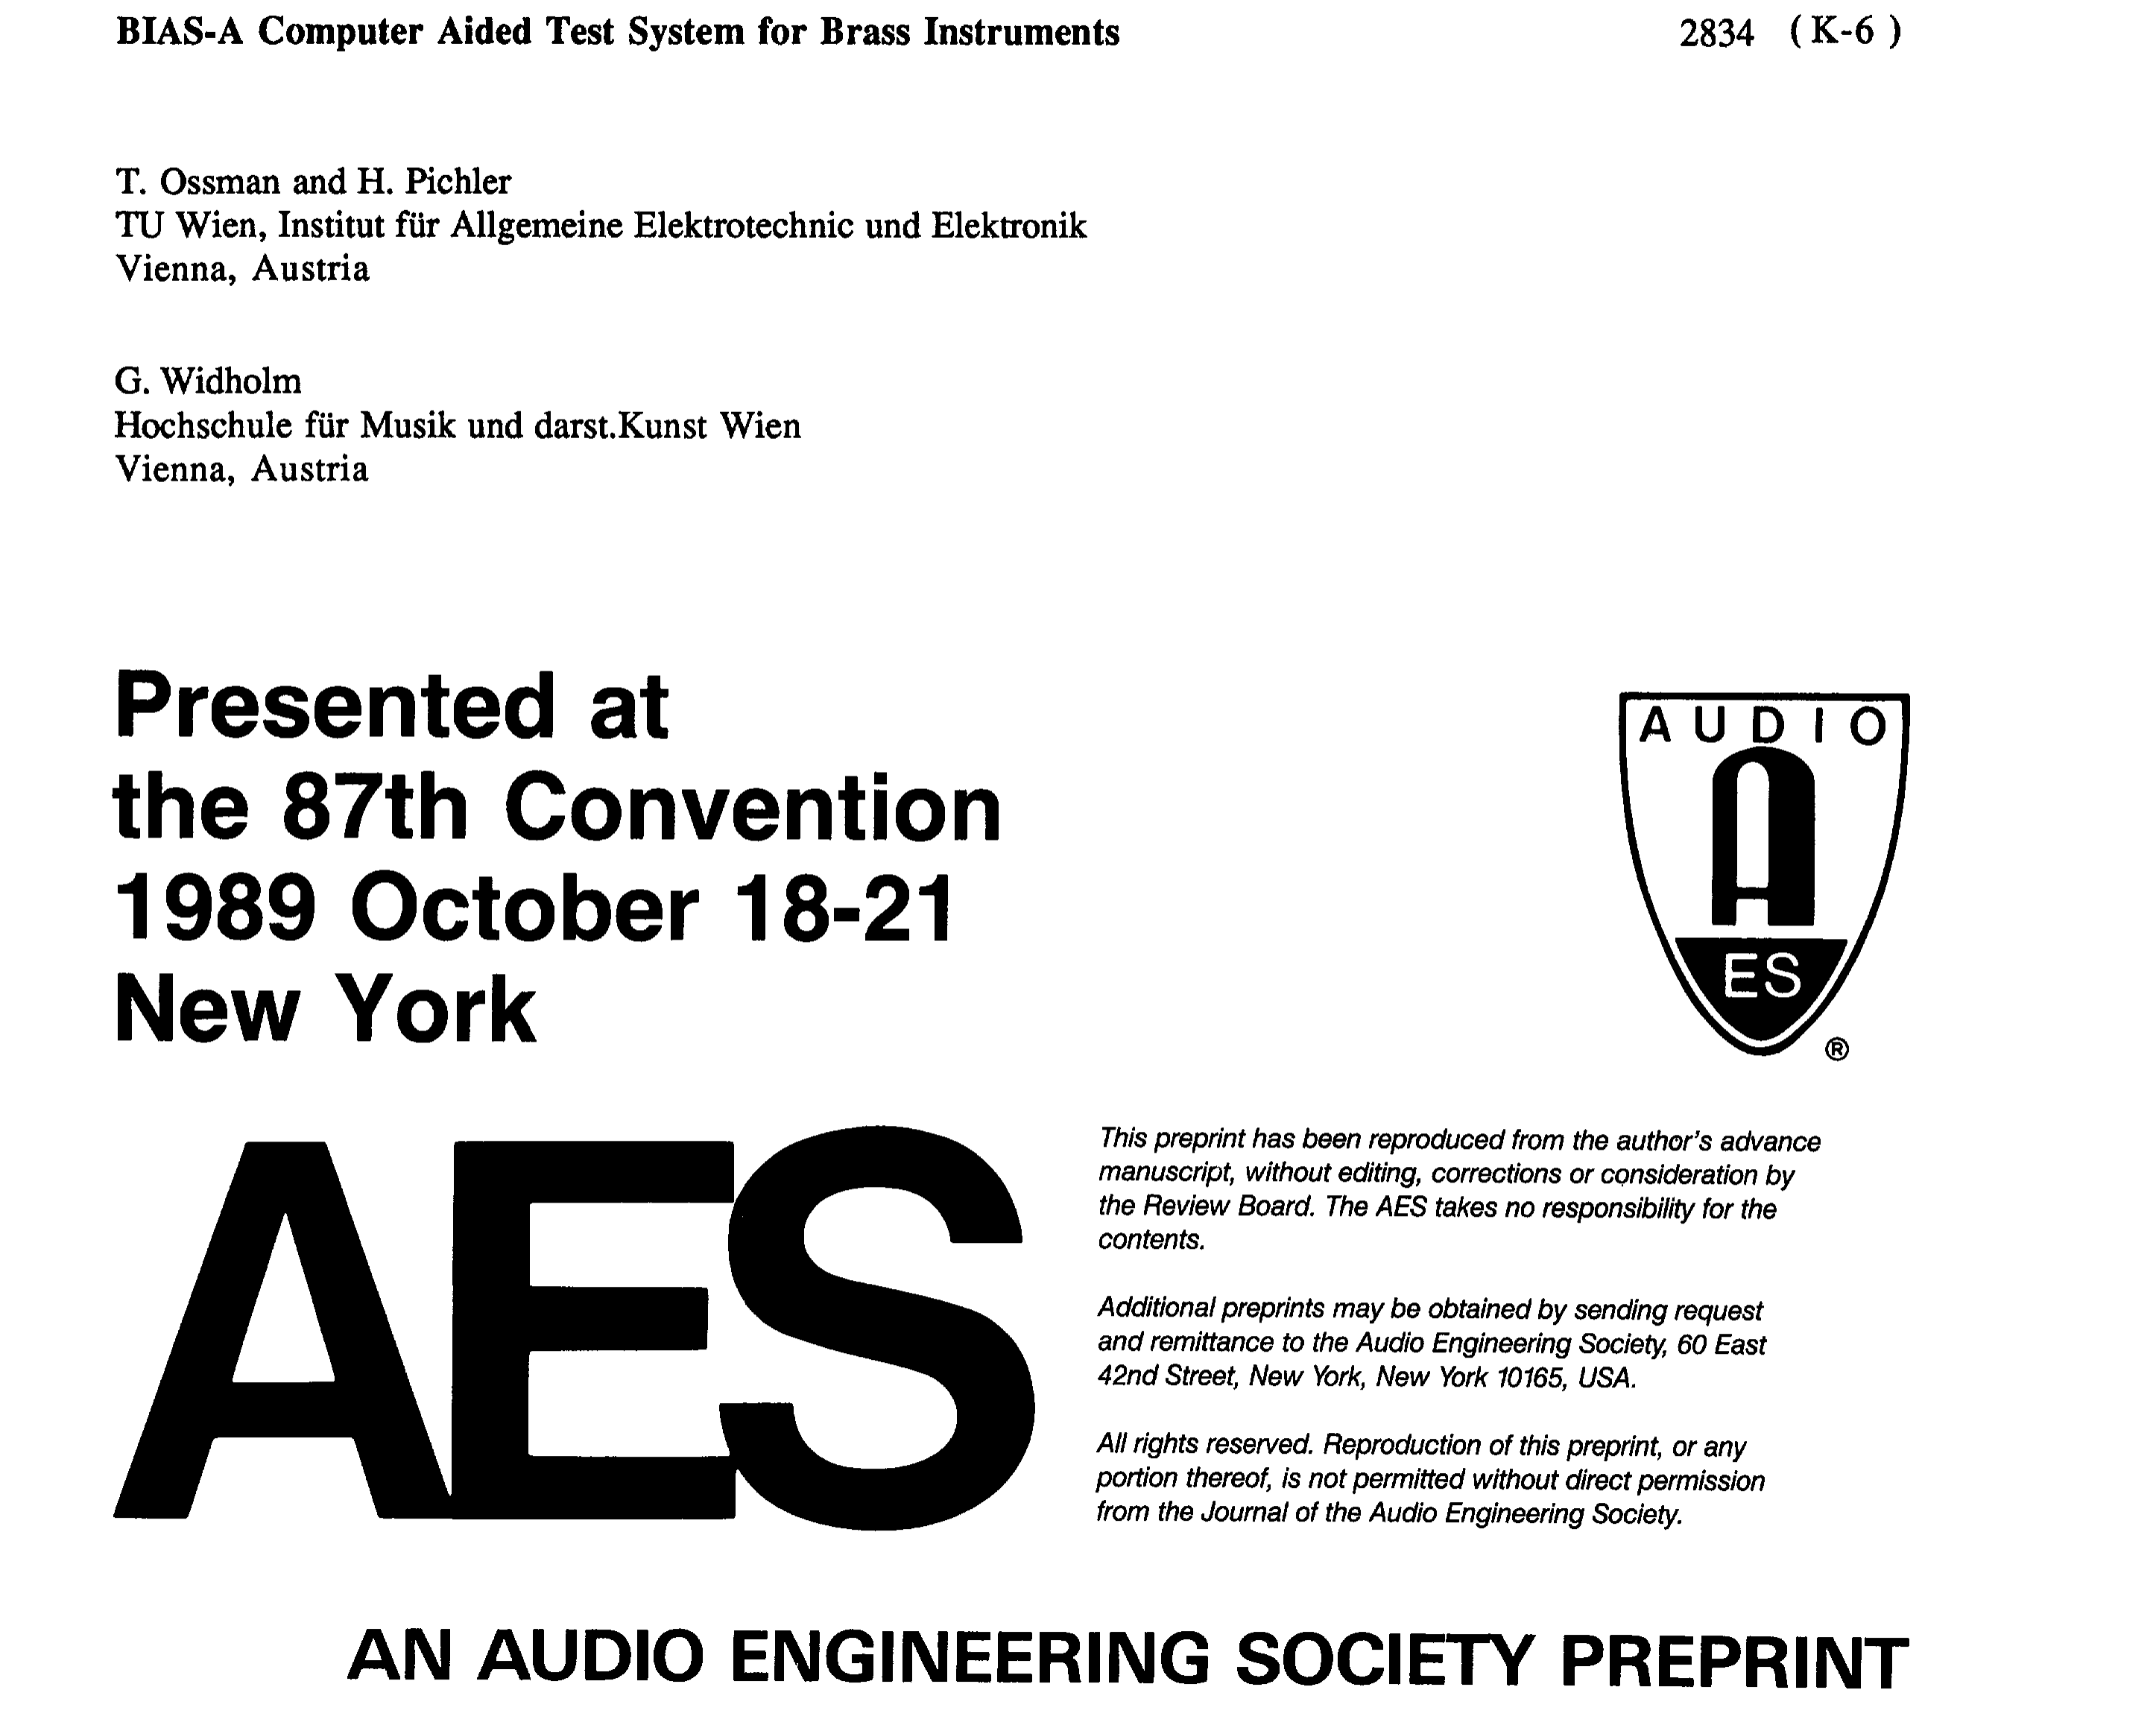 Aes E Library Bias A Computer Aided Test System For Brass Wind Voice Control Circuit Scr Music Sound Instruments